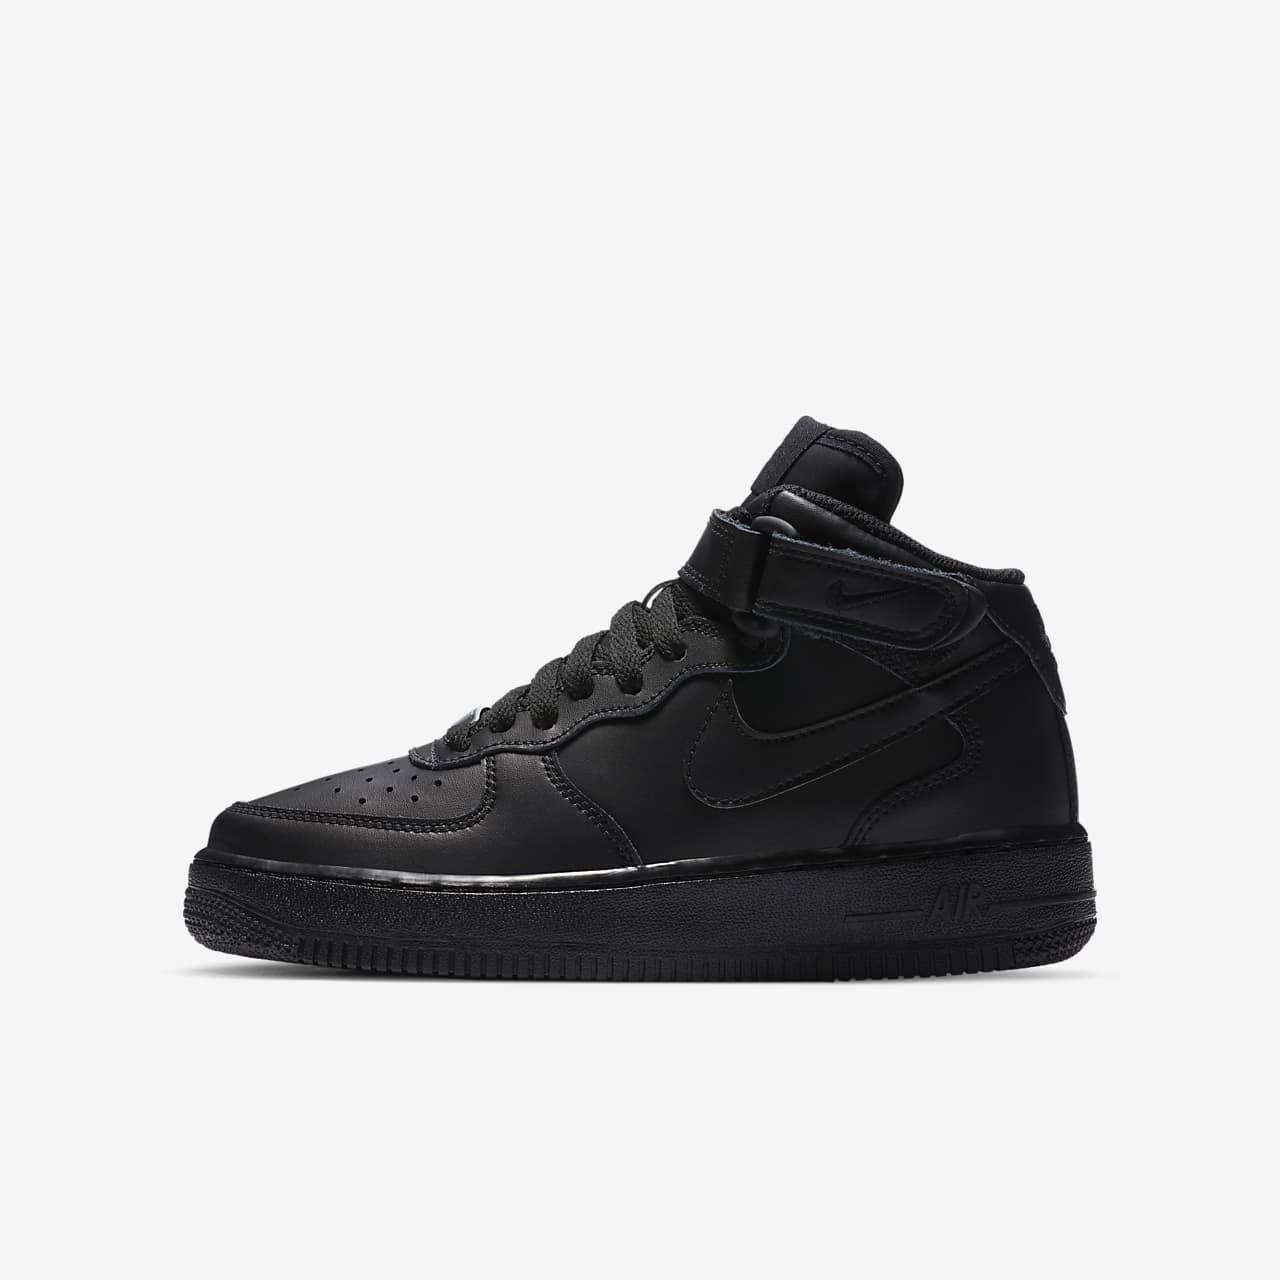 nike air max air force 1 nz